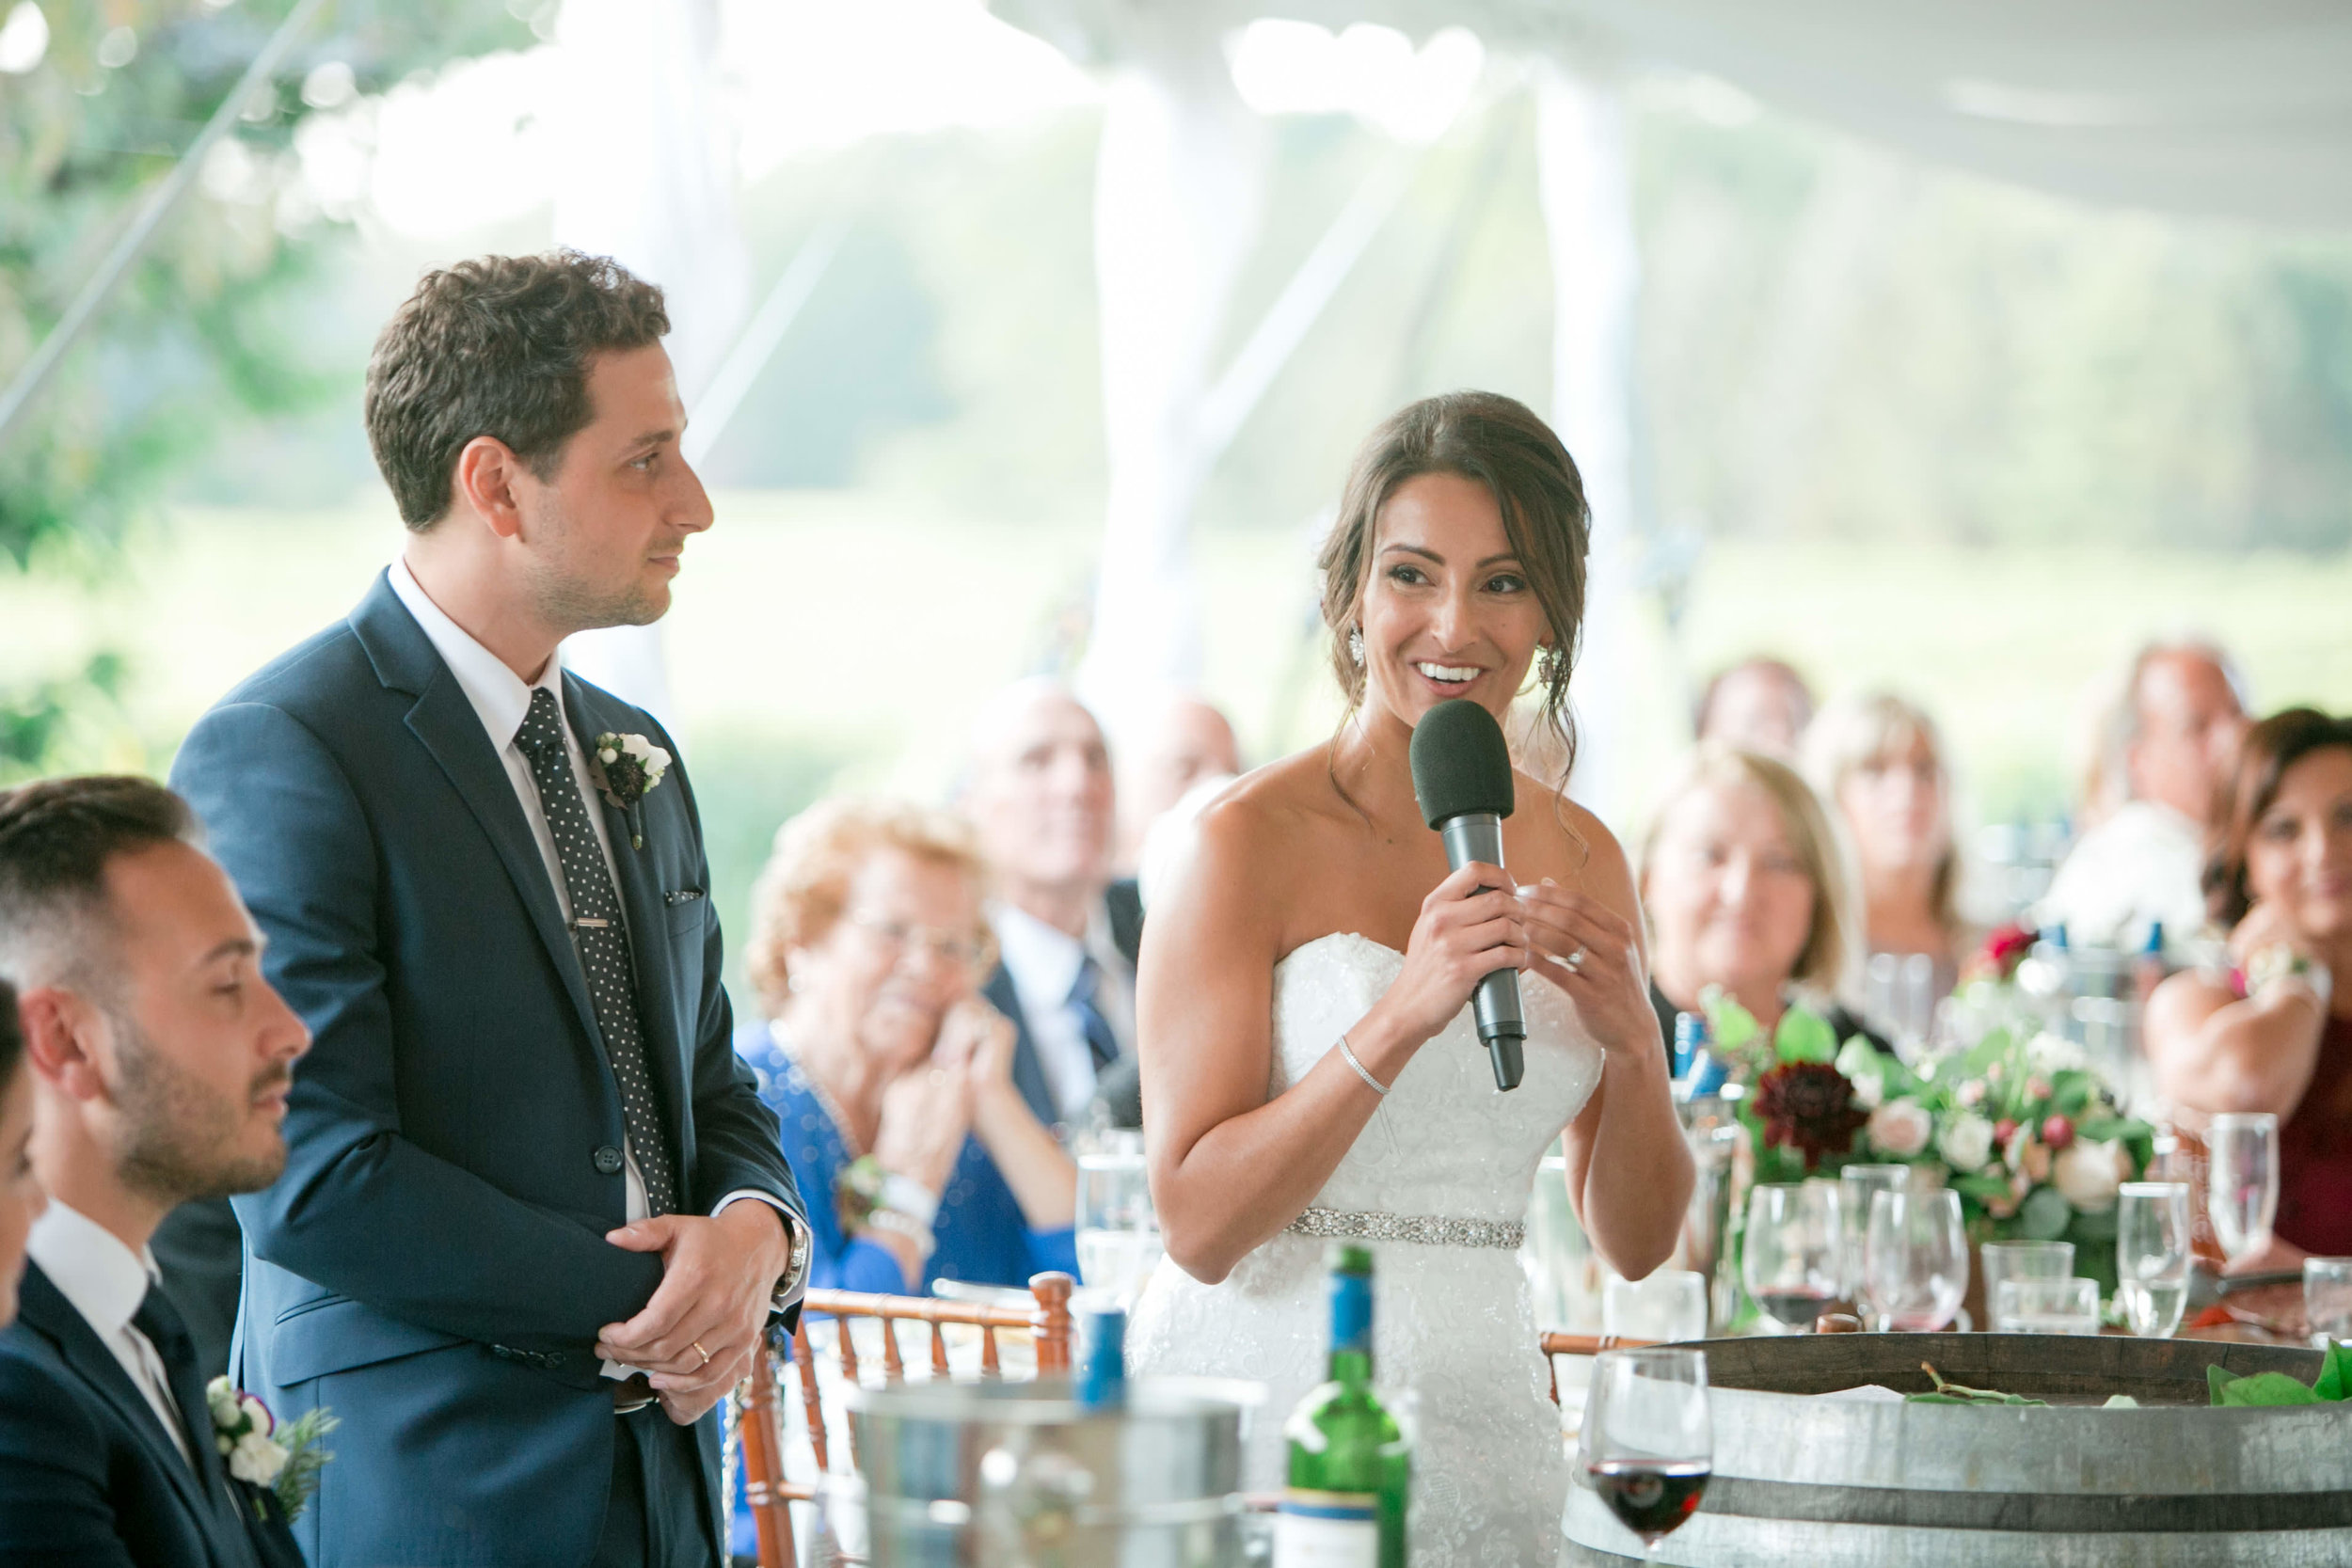 Sabrina___Jonathan_Wedding___High_Res._Finals_Daniel_Ricci_Weddings_593.jpg